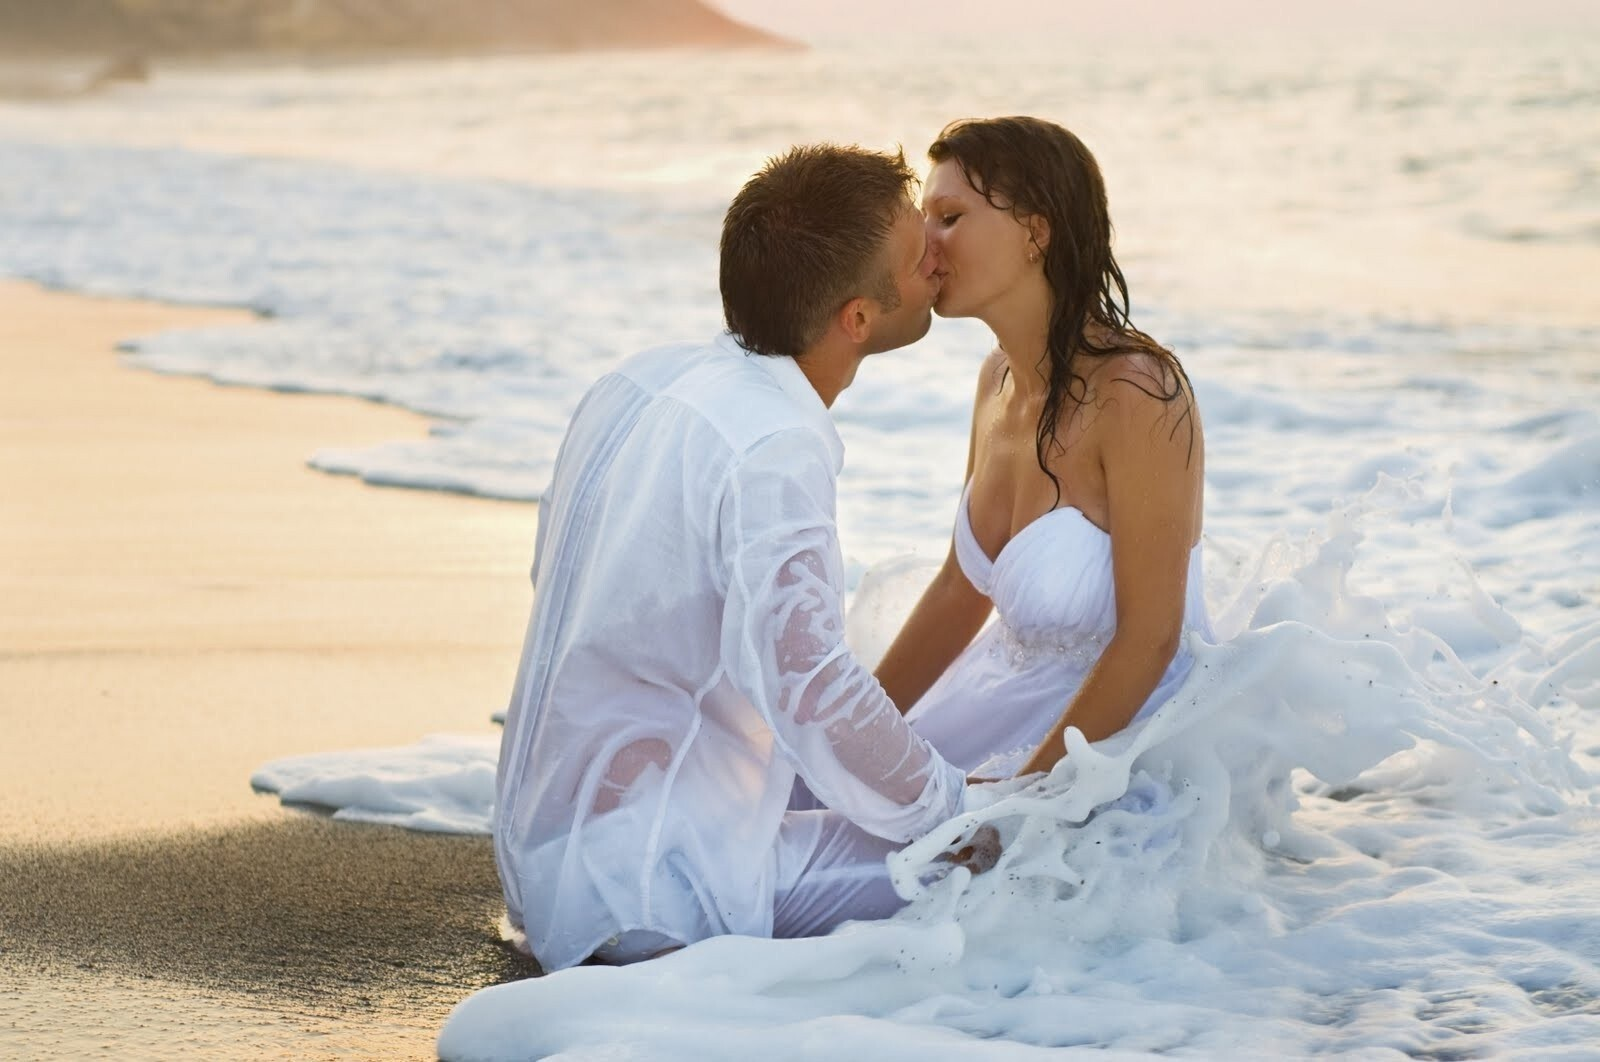 Romantic Couple Kiss At The Beach Love Hd Desktop Wallpaper